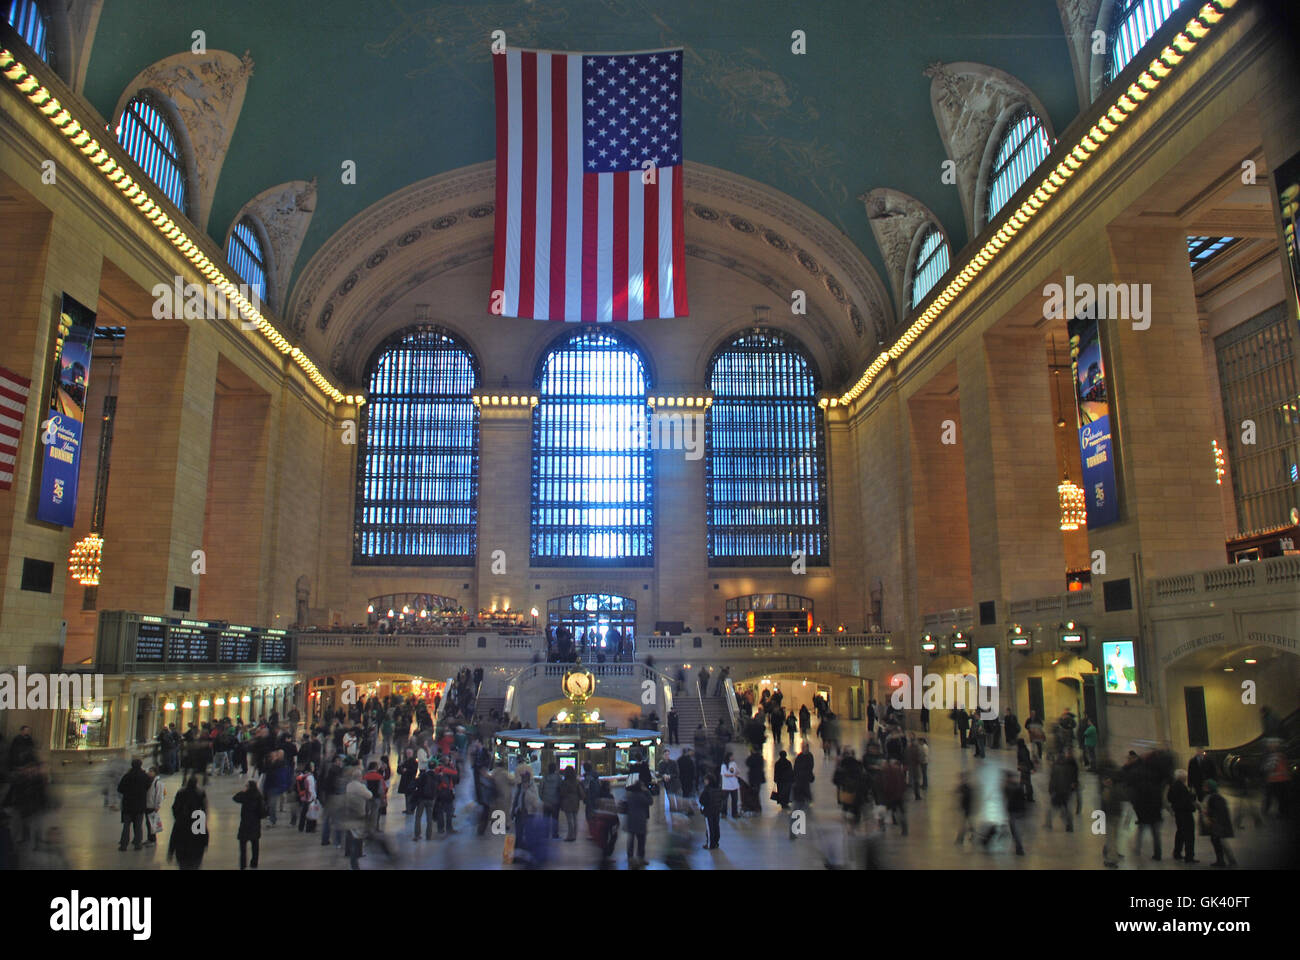 Grand central station new york stock photo royalty free for Grand tableau new york